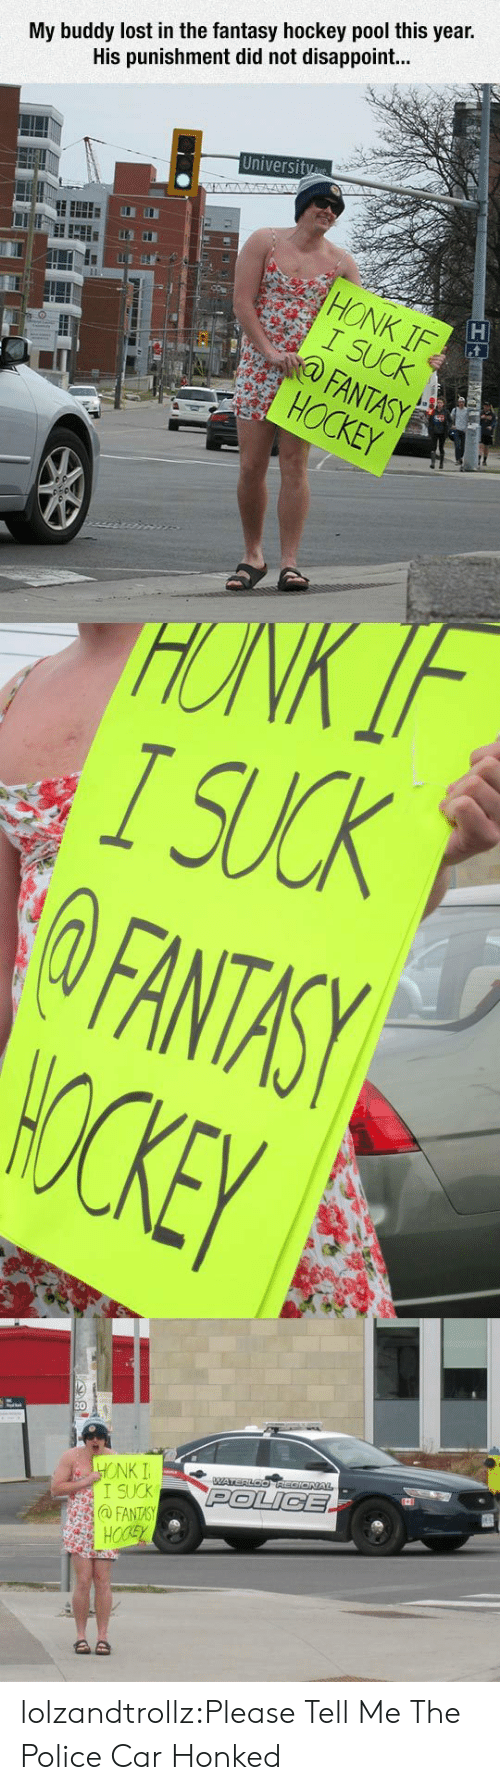 Hockey, Police, and Tumblr: My buddy lost in the fantasy hockey pool this year.  His punishment did not disappoint...  University  STA  HONK IF  I SUCK  FANTASY  HOCKEY  HONK IF  I SUCK  FANTASY  WOCKEY  HONK I  I SUCK  @FANTASY  HOCSY  WATERLOOREGIONAL  POLICE  AD lolzandtrollz:Please Tell Me The Police Car Honked